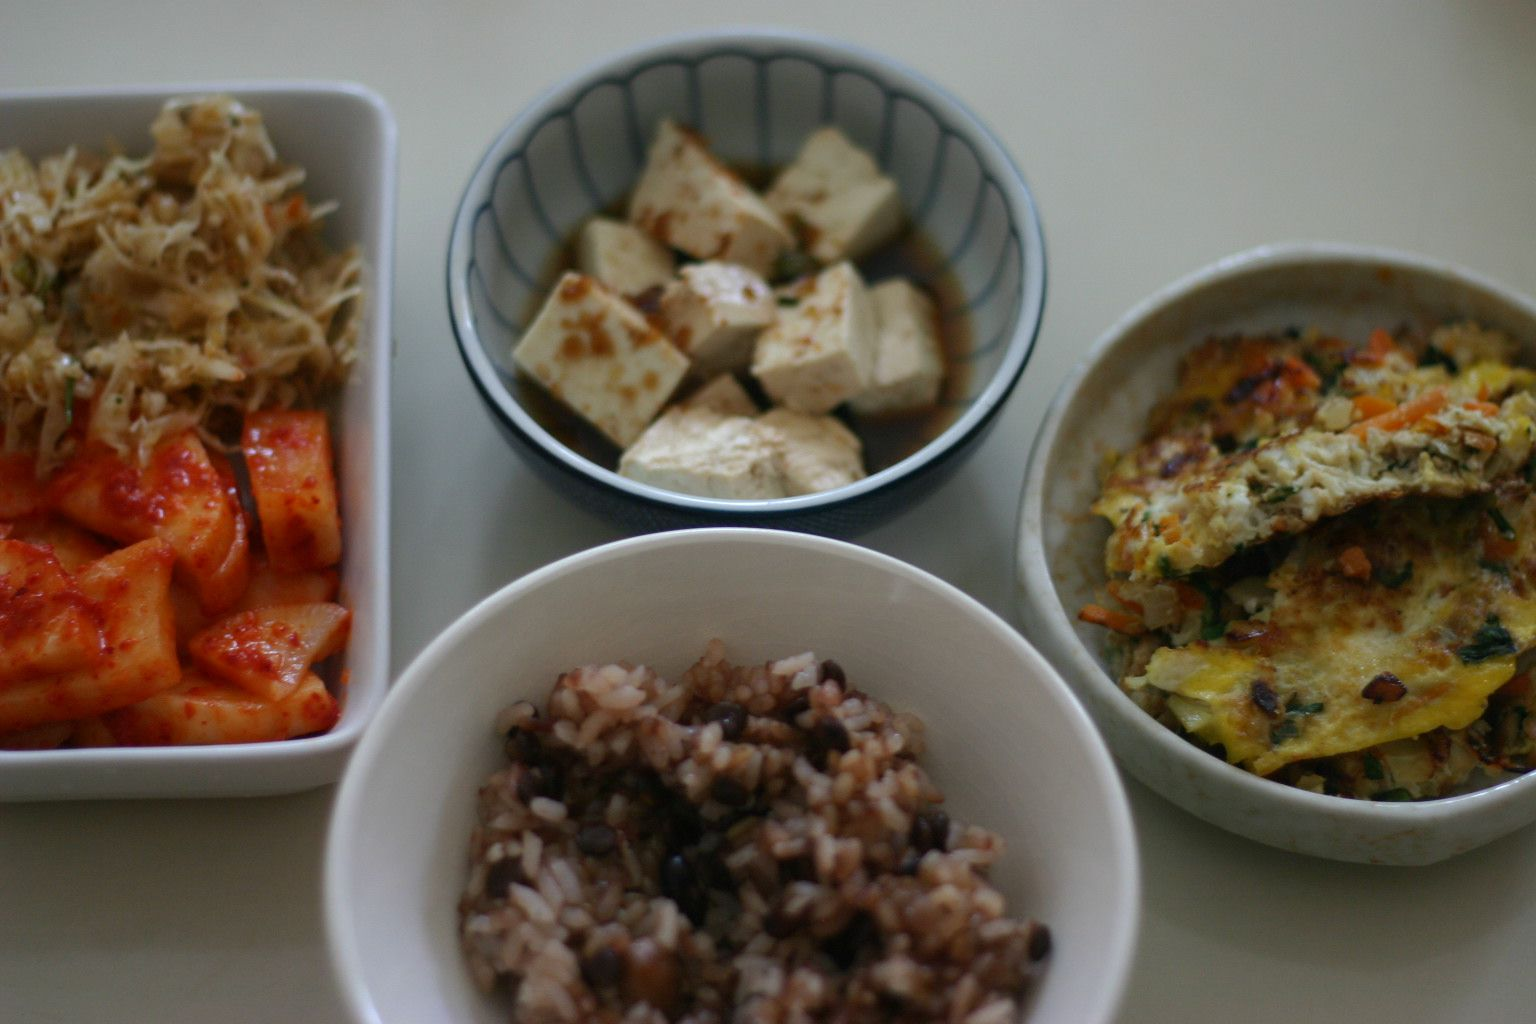 Korean Breakfast with Tofu and Omelette